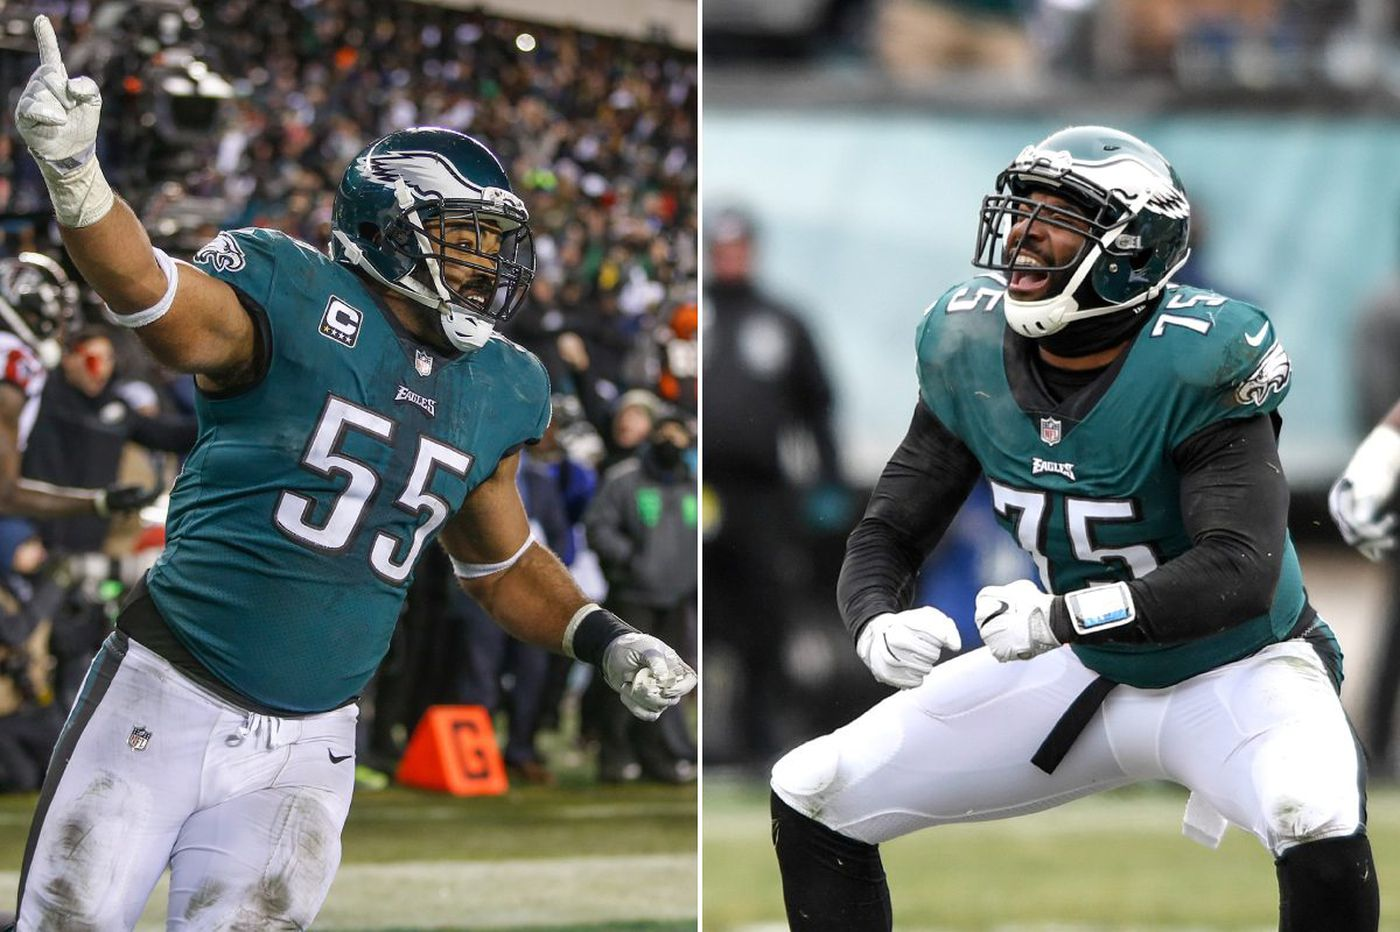 Brandon Graham and Vinny Curry took a long route but arrived at the Super Bowl | Bob Ford